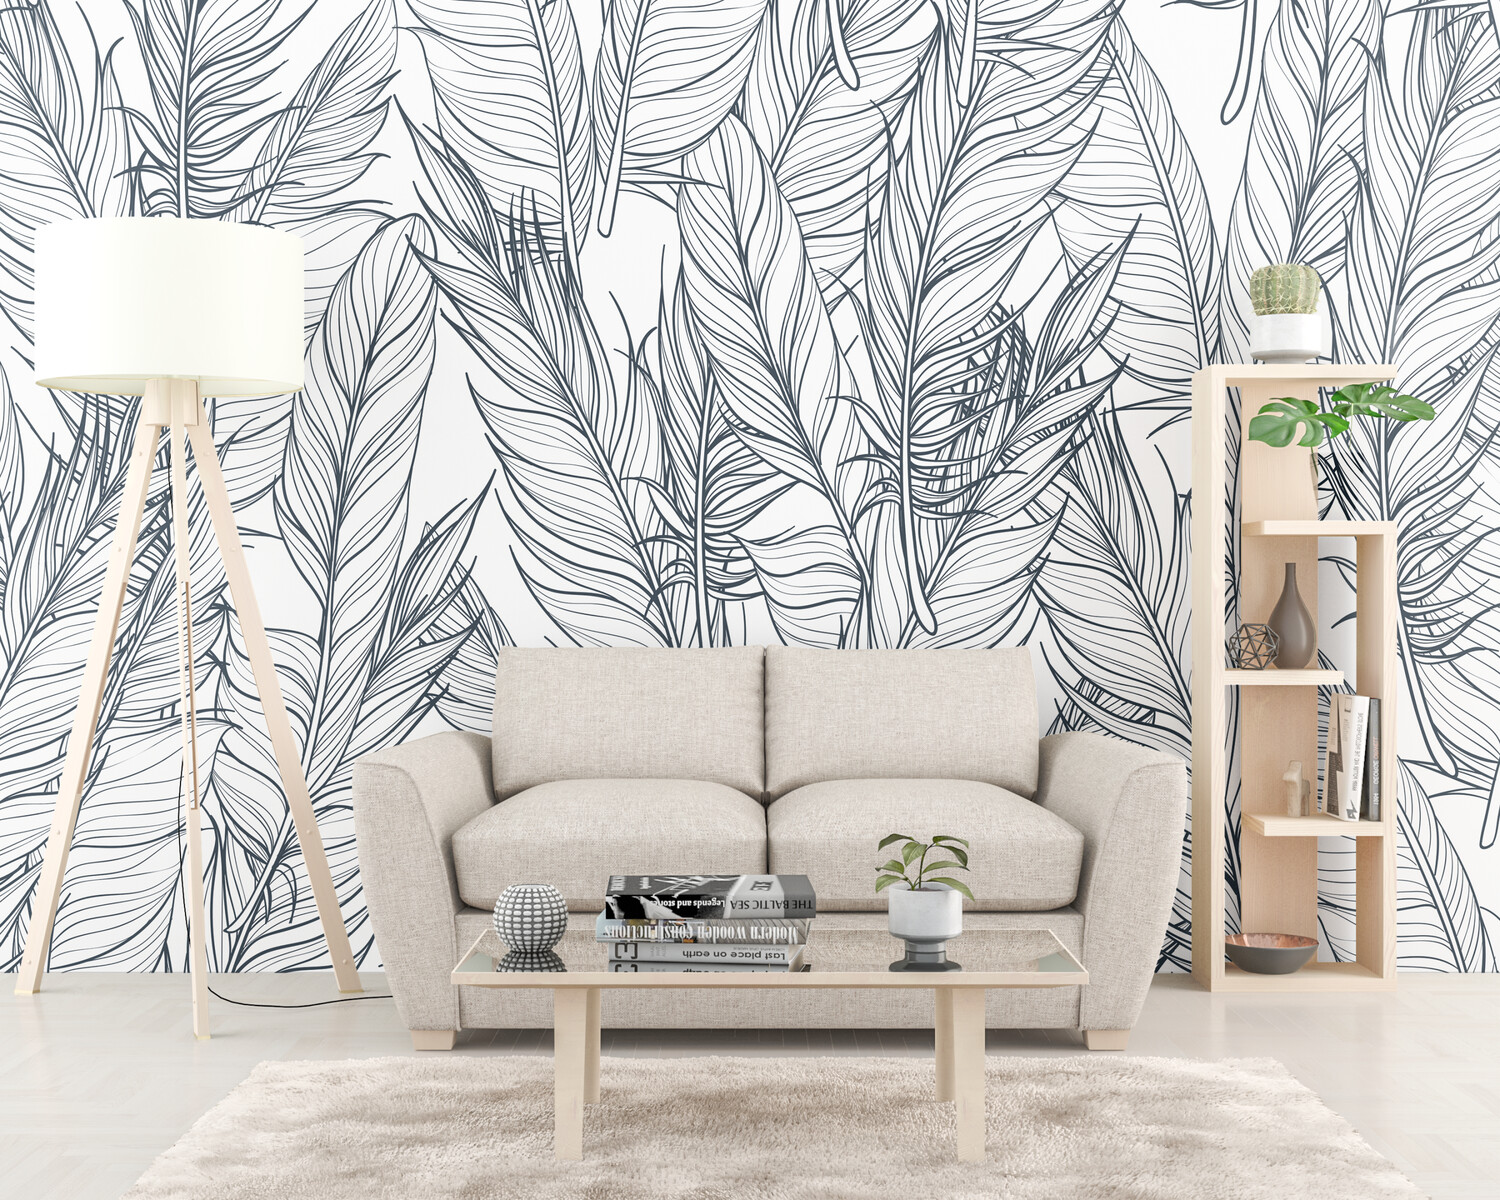 BLACK & WHITE FEATHERS | Vinyl Wall Wrap for Any Room | Removable Vinyl Wallpaper